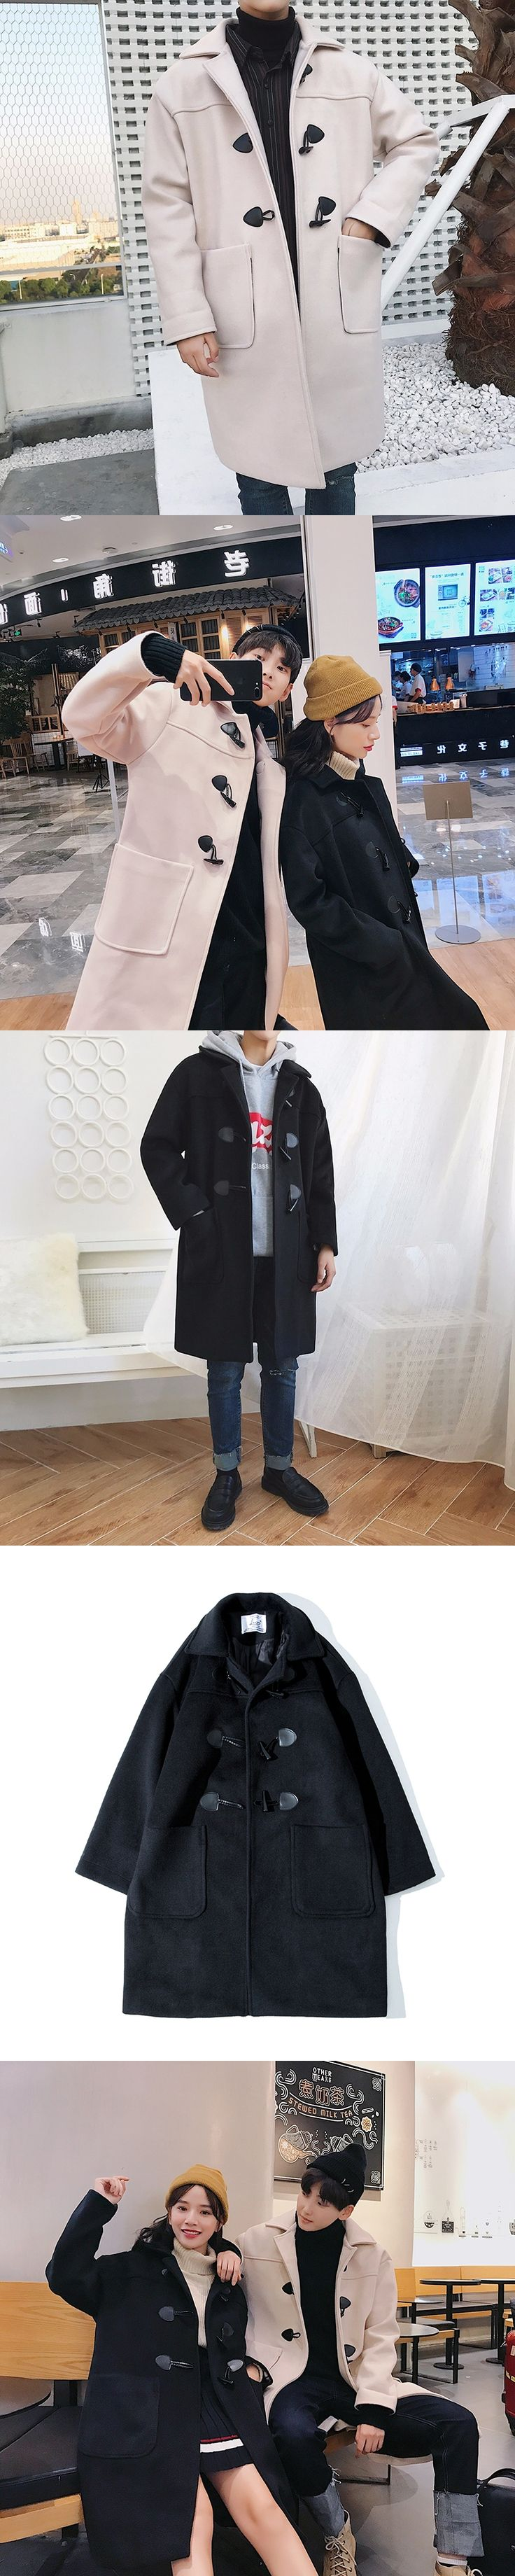 2017 Winter New Men Fashion Woolen Blends Horn Buckle Turn-down Collar Loose Casual Mid-Long Overcoat Lovers Clothes Coats S-xl